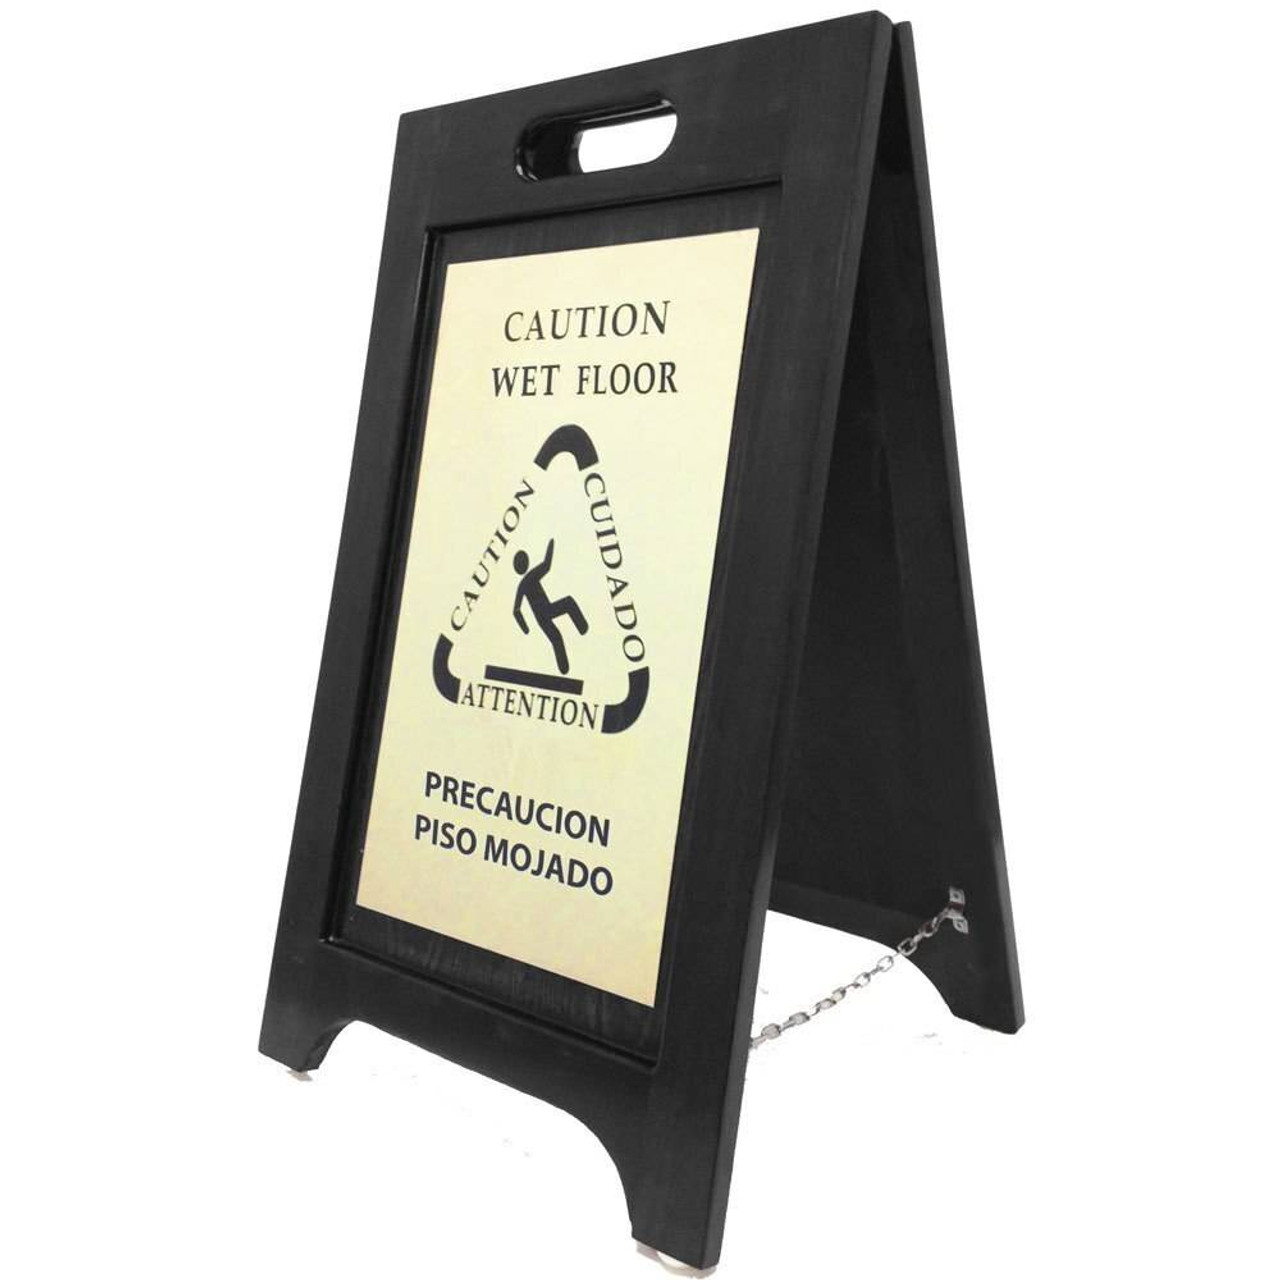 HOSPITALITY 1 SOURCE HOSPITALITY 1 SOURCE or WET FLOOR SIGN BRASS or BLACK FINISH or 2 PER CASE